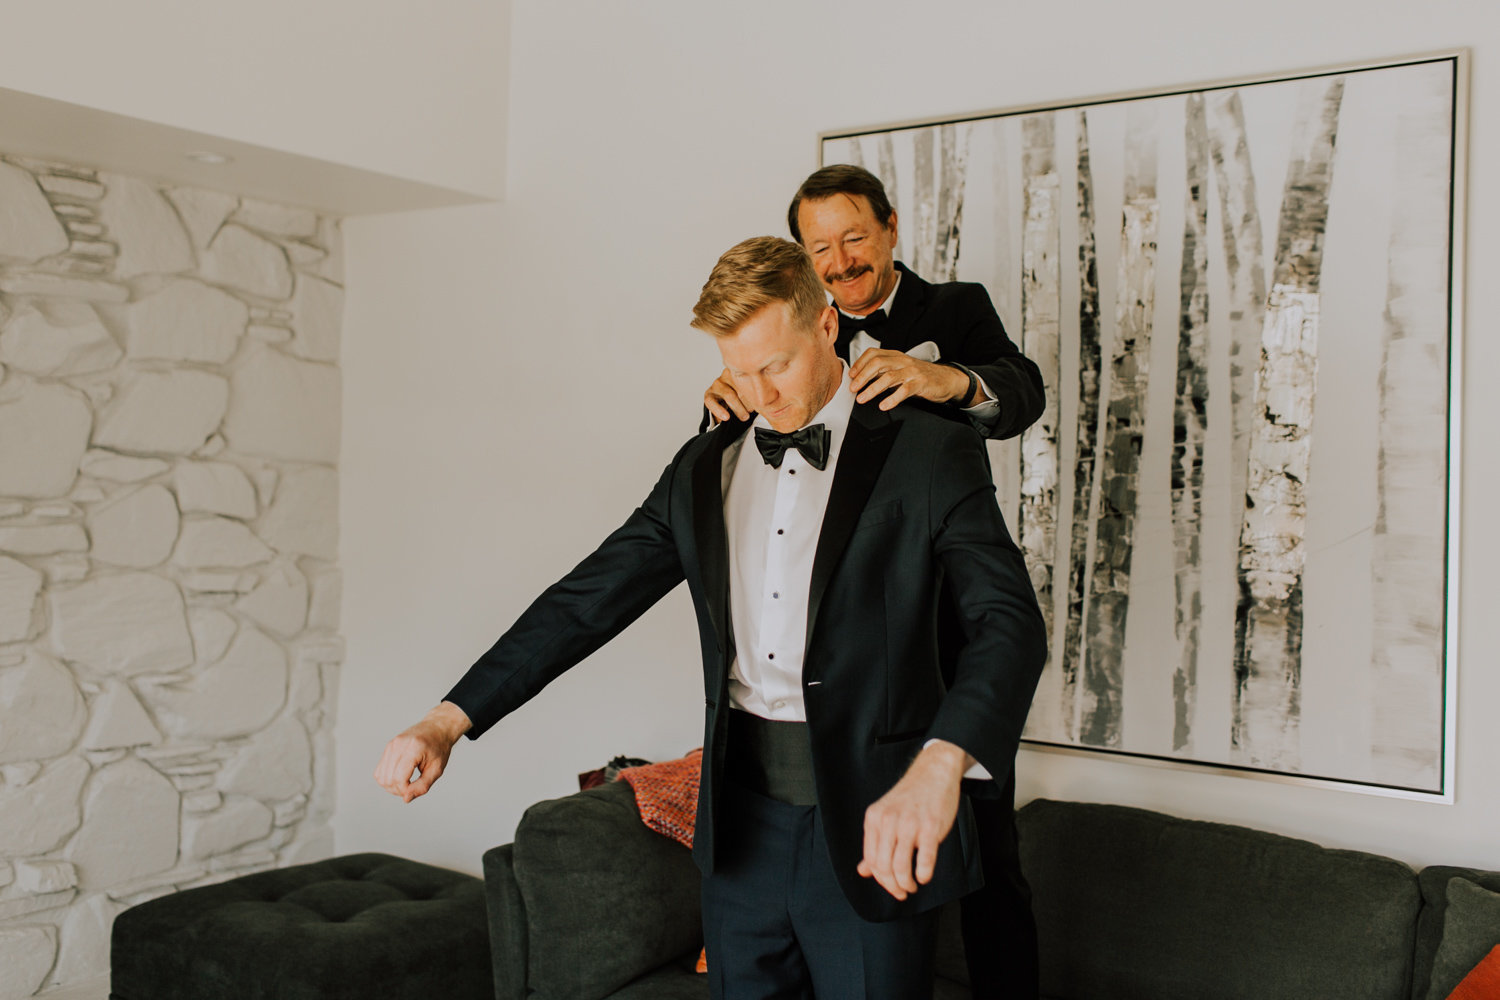 Brianna Broyles_Spencers Wedding_Palm Springs_Wedding Photographer-27